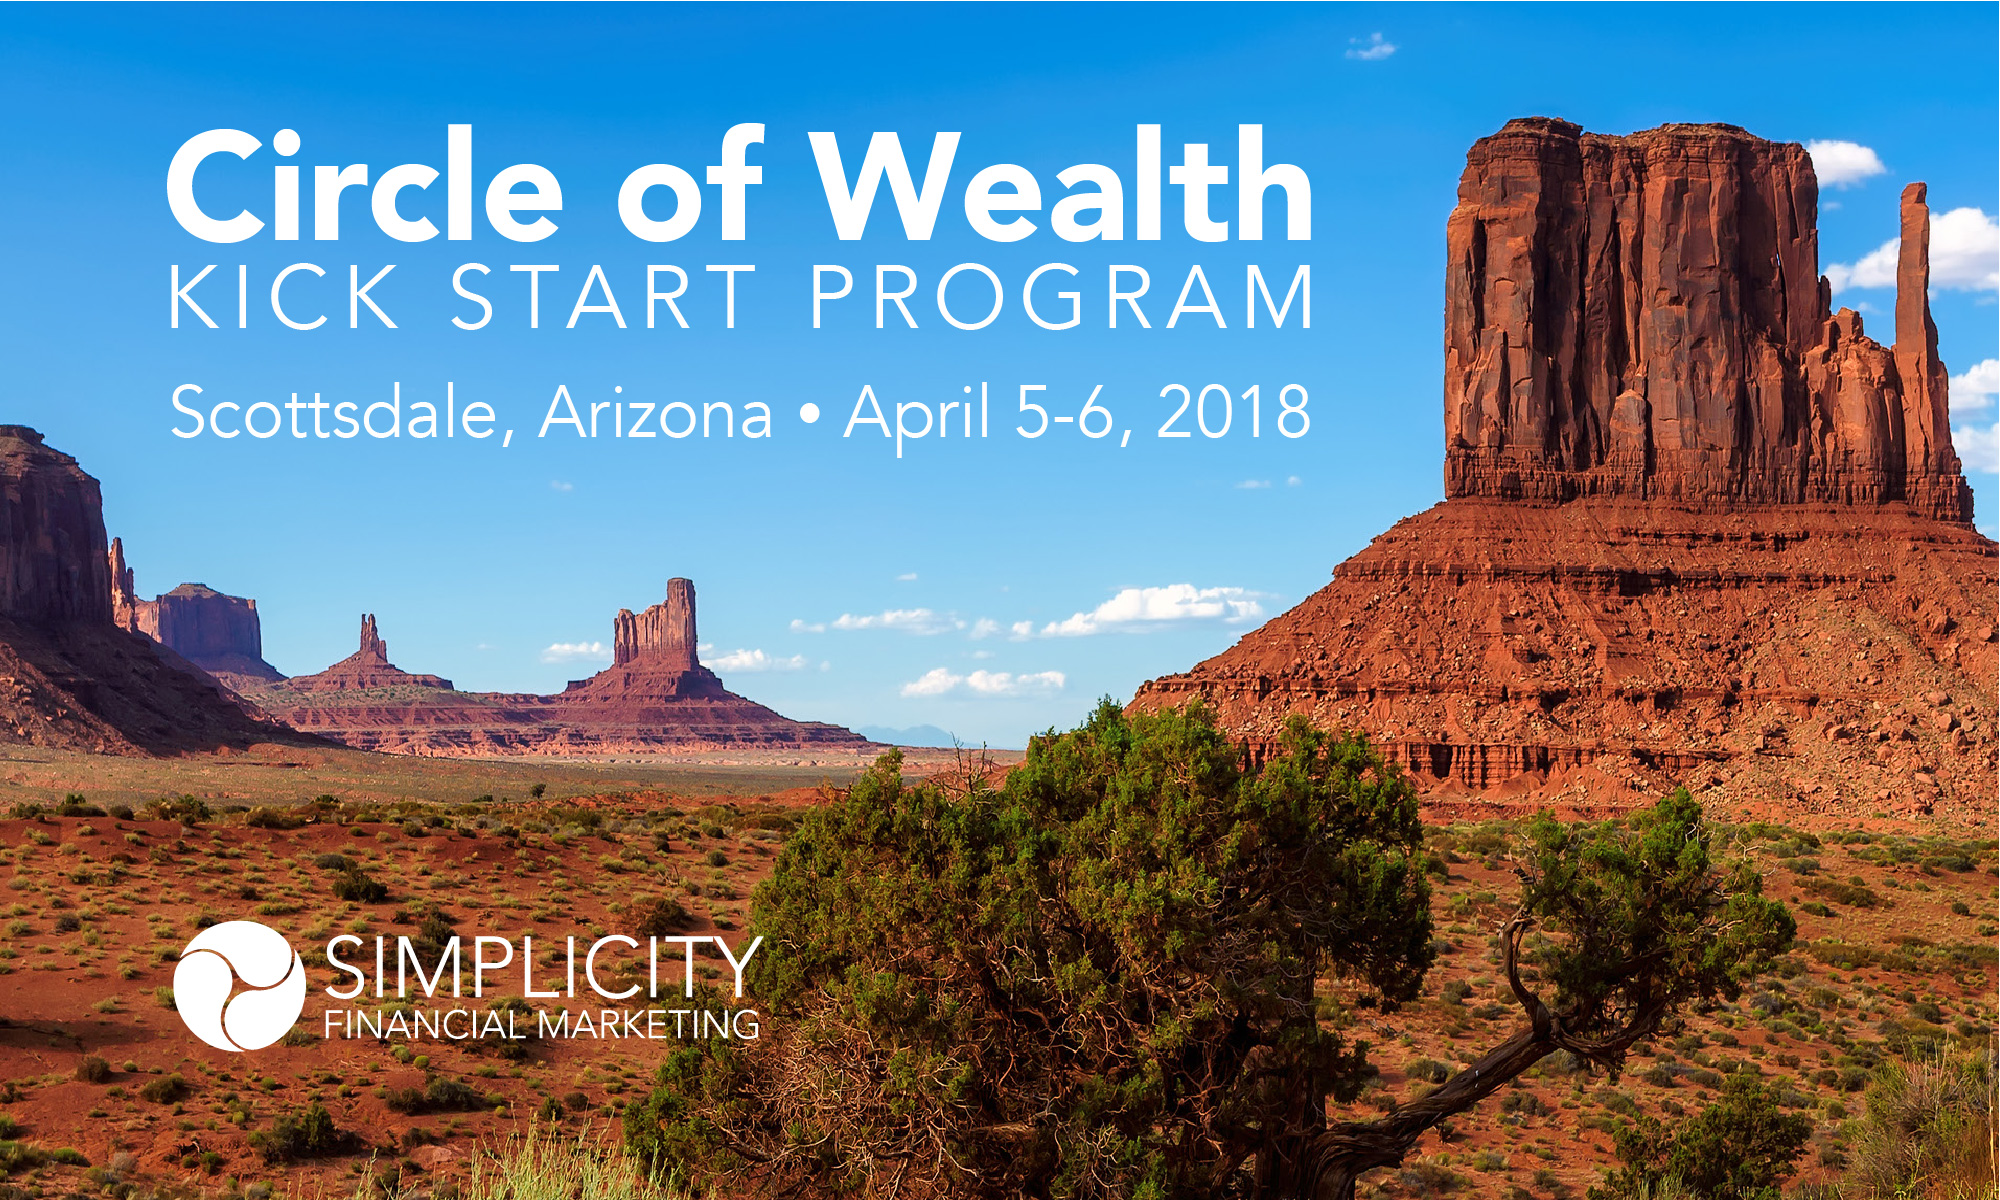 Circle of Wealth Kick Start Program